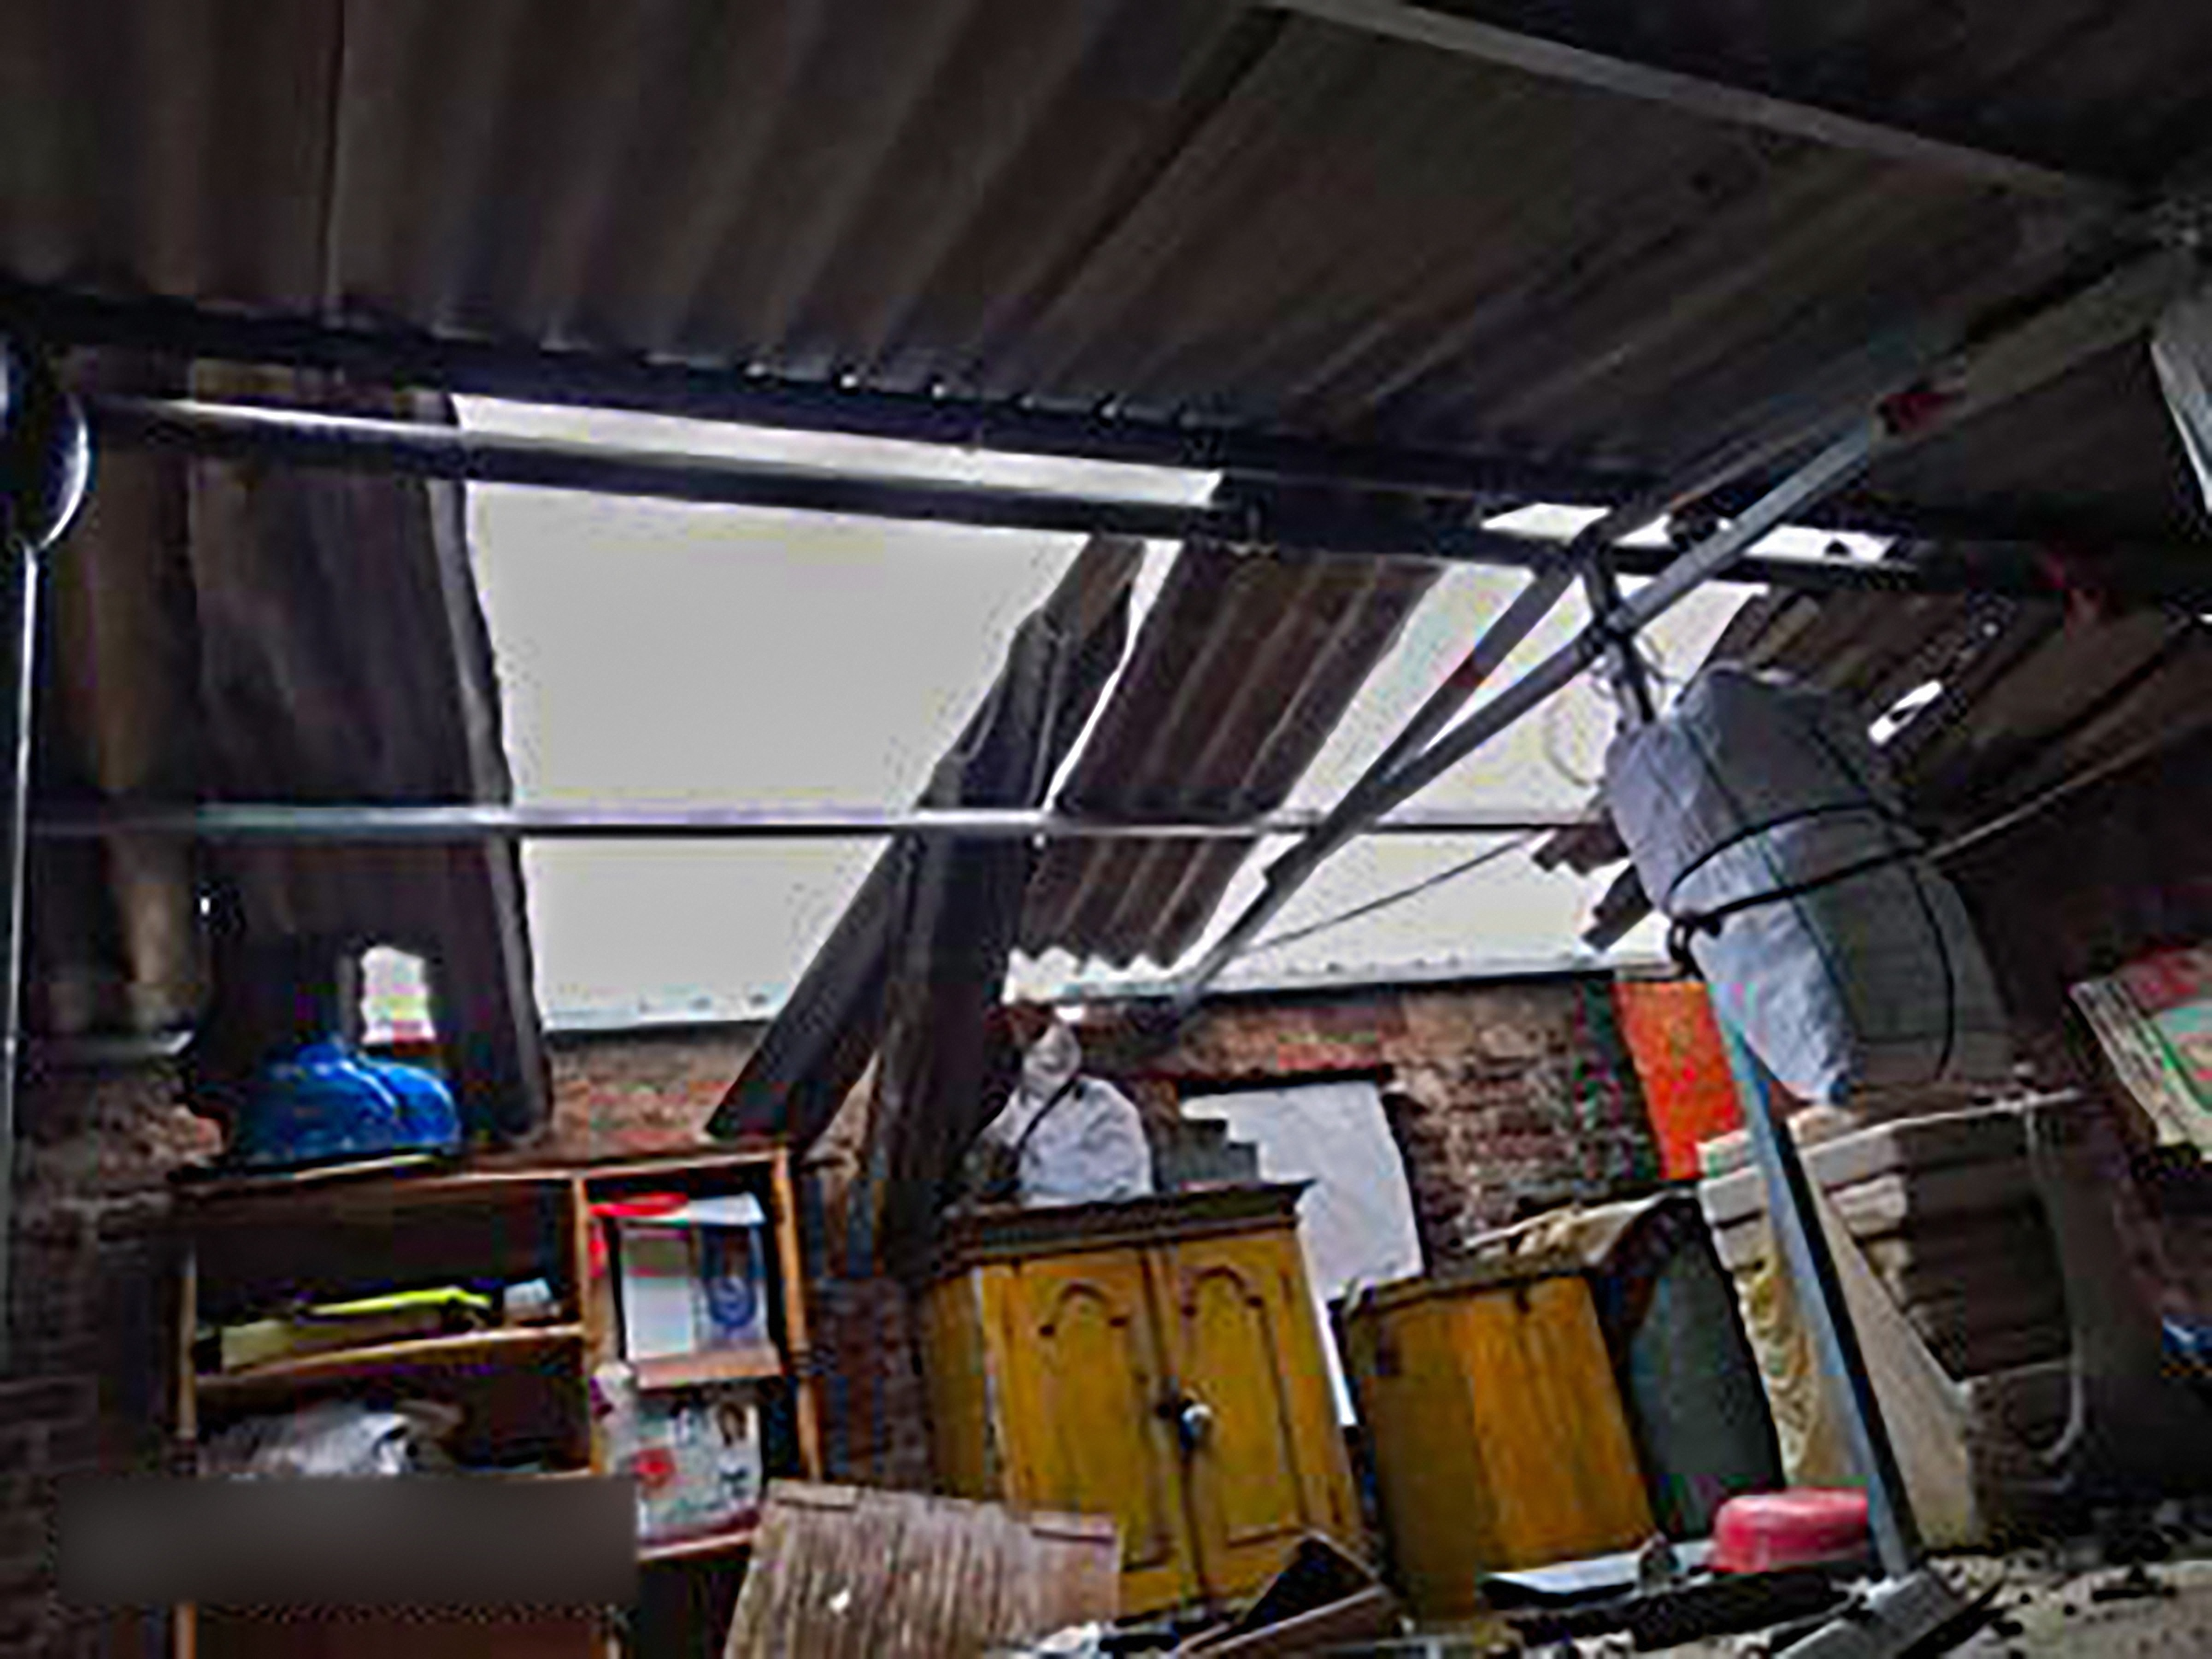 A house damaged during Cyclone Nisarga, at Roha in Raigad, Wednesday, June 3, 2020. Cyclone Nisarga made landfall near Maharashtras coastal town of Alibag, around 100 kilometers (60 miles) south of Mumbai, on Wednesday afternoon.